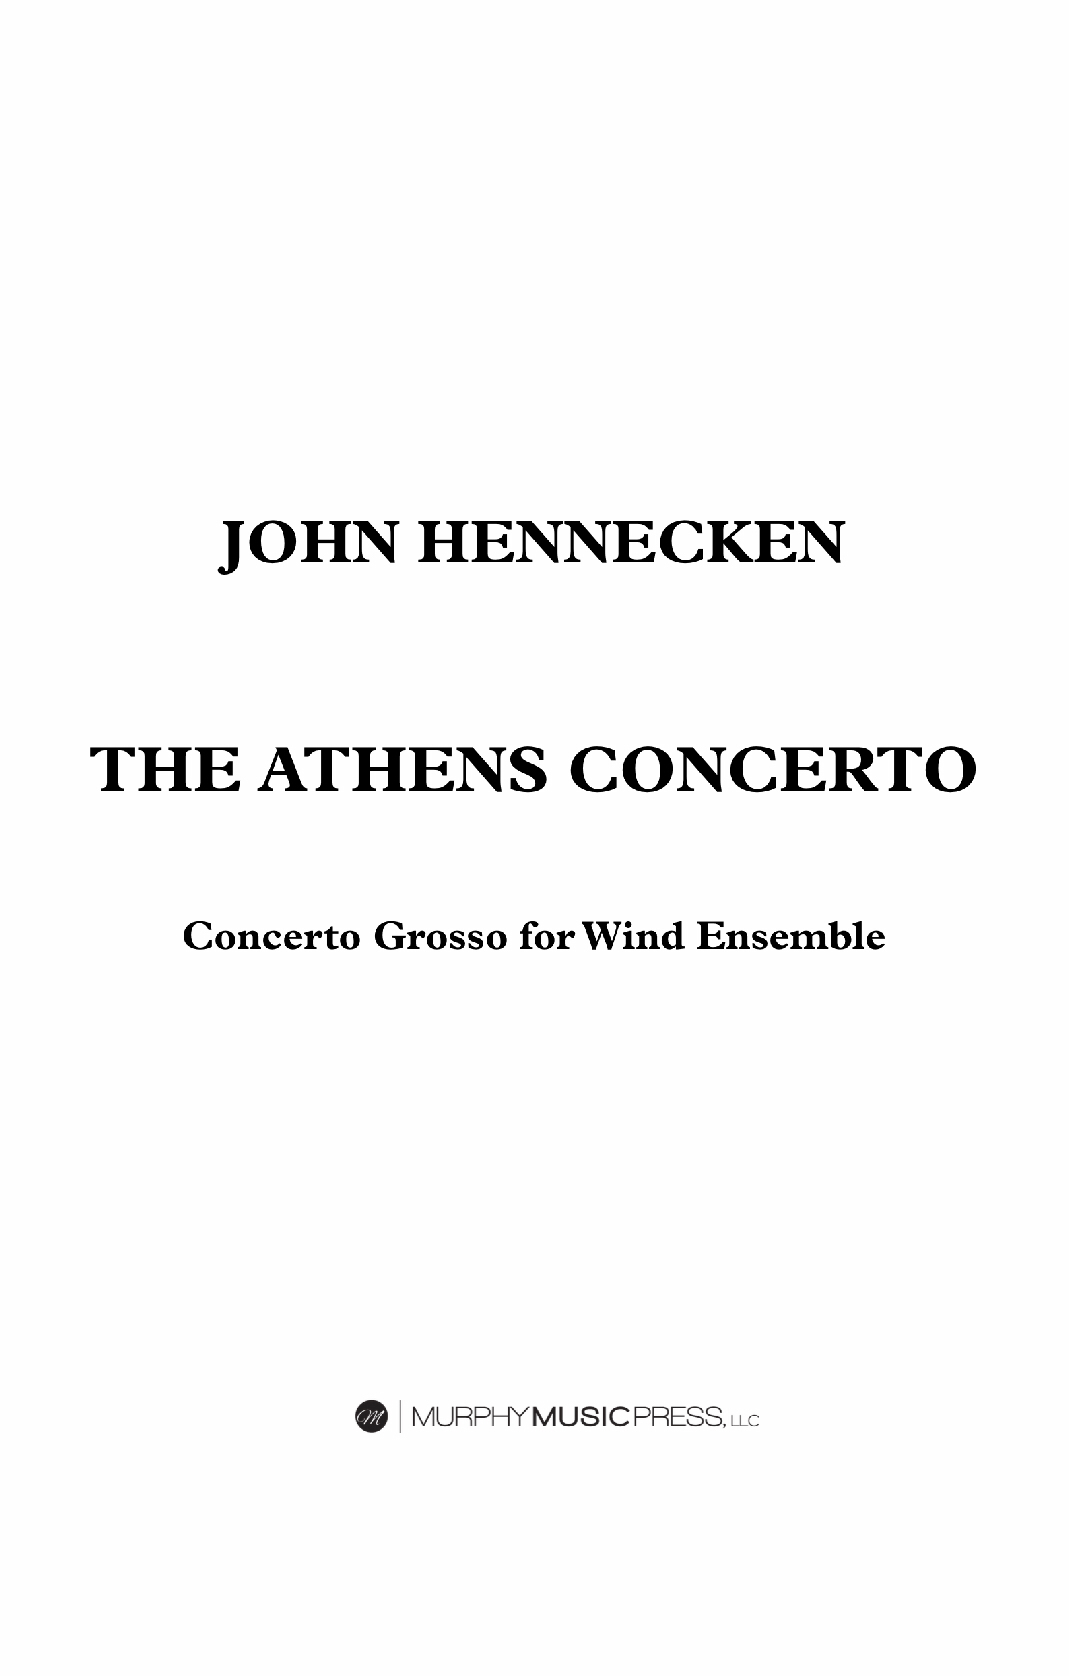 The Athens Concerto by John Hennecken